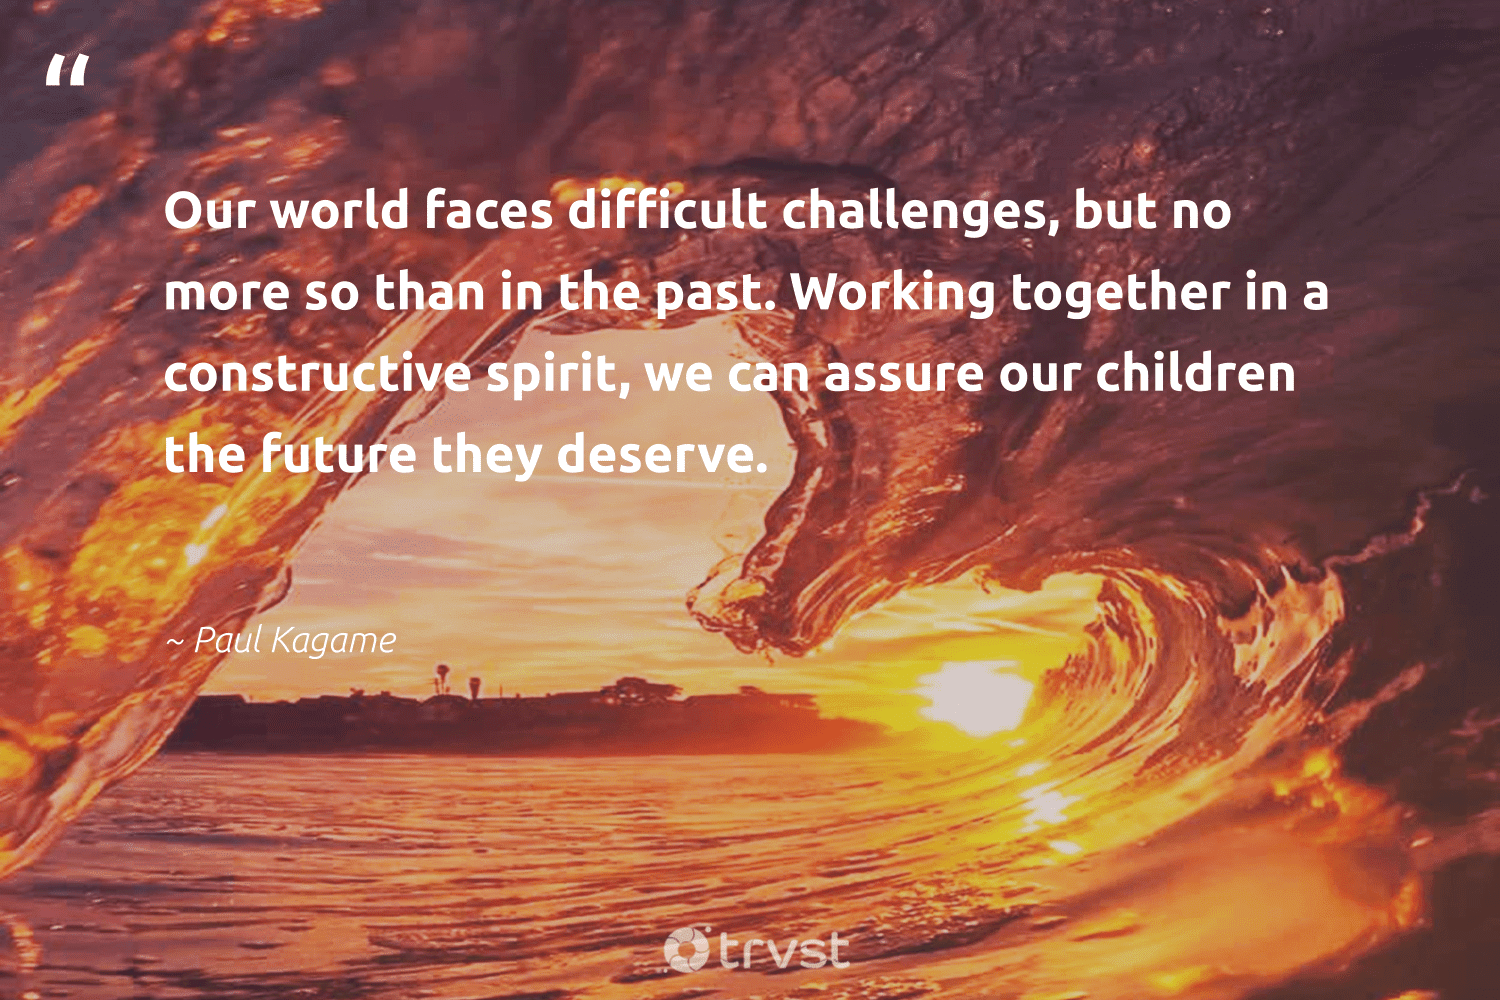 """""""Our world faces difficult challenges, but no more so than in the past. Working together in a constructive spirit, we can assure our children the future they deserve.""""  - Paul Kagame #trvst #quotes #workingtogether #children #begreat #changetheworld #nevergiveup #socialchange #softskills #thinkgreen #futureofwork #dogood"""